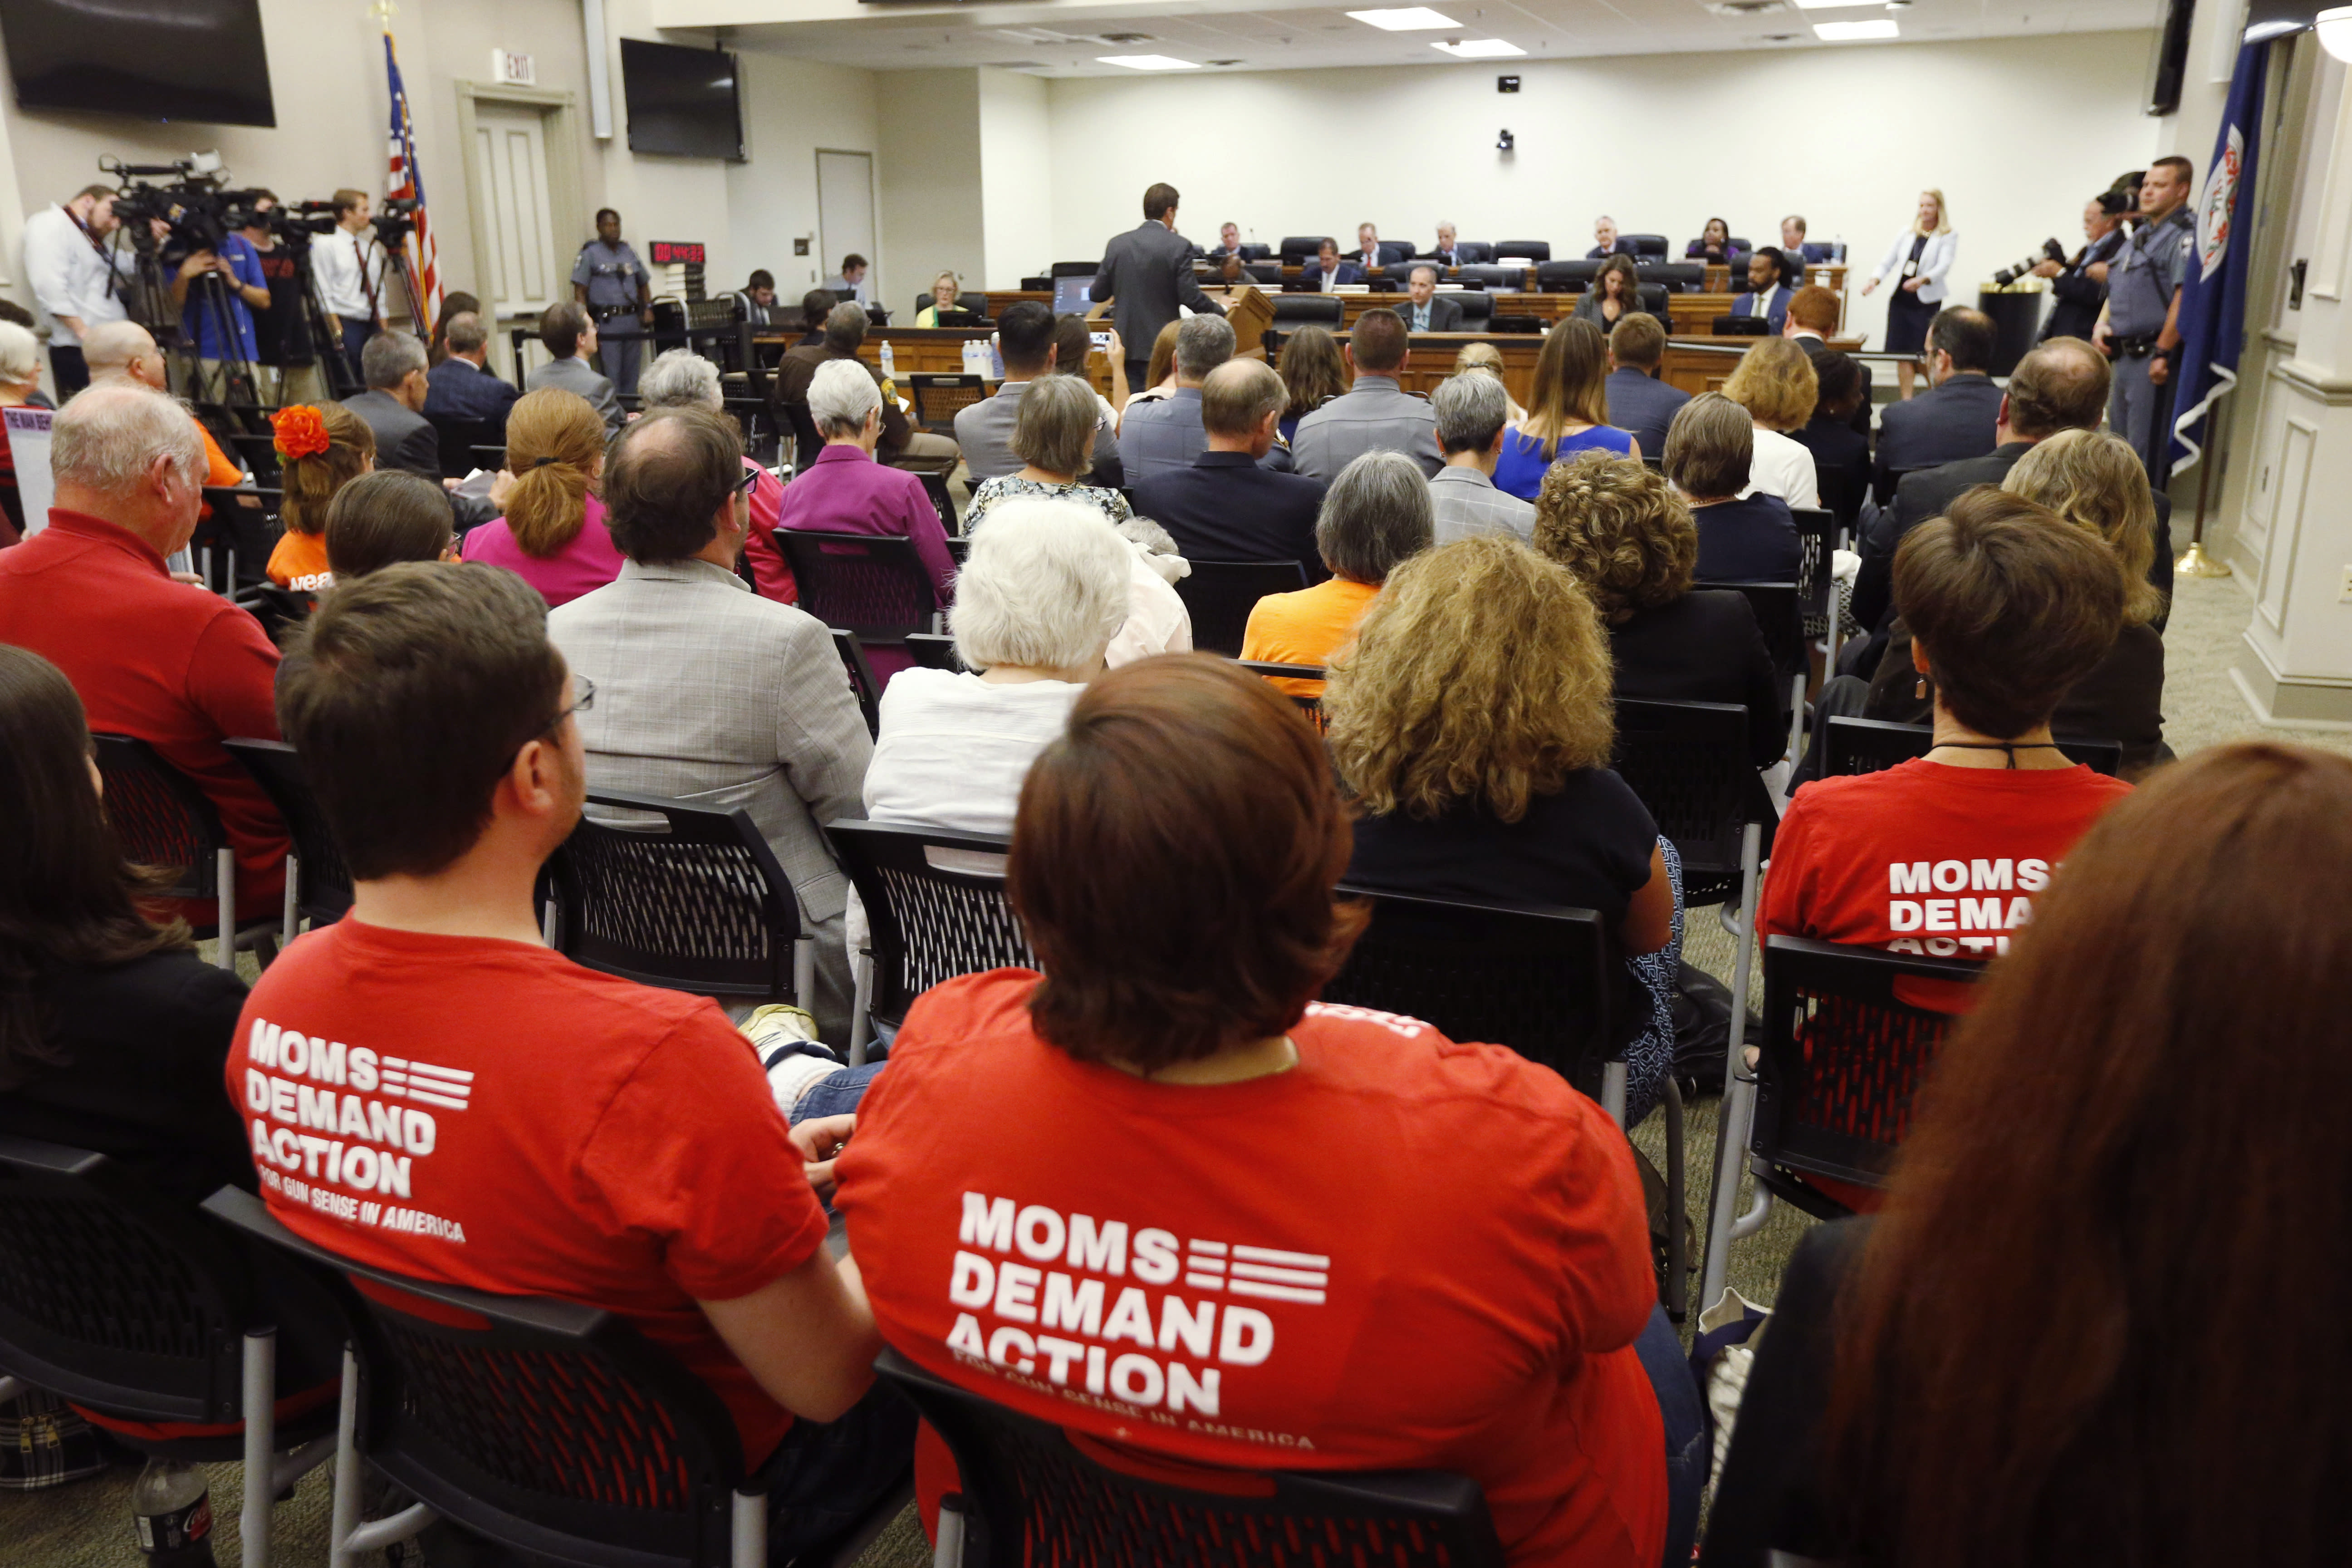 Attendees wear shirts during the second day of a Virginia Crime Commission meeting on gun issues at the Capitol in Richmond, Va., Tuesday, Aug. 20, 2019. Democratic Gov. Ralph Northam called the special session after a city employee opened fire in a Virginia Beach municipal complex May 31. (AP Photo/Steve Helber)